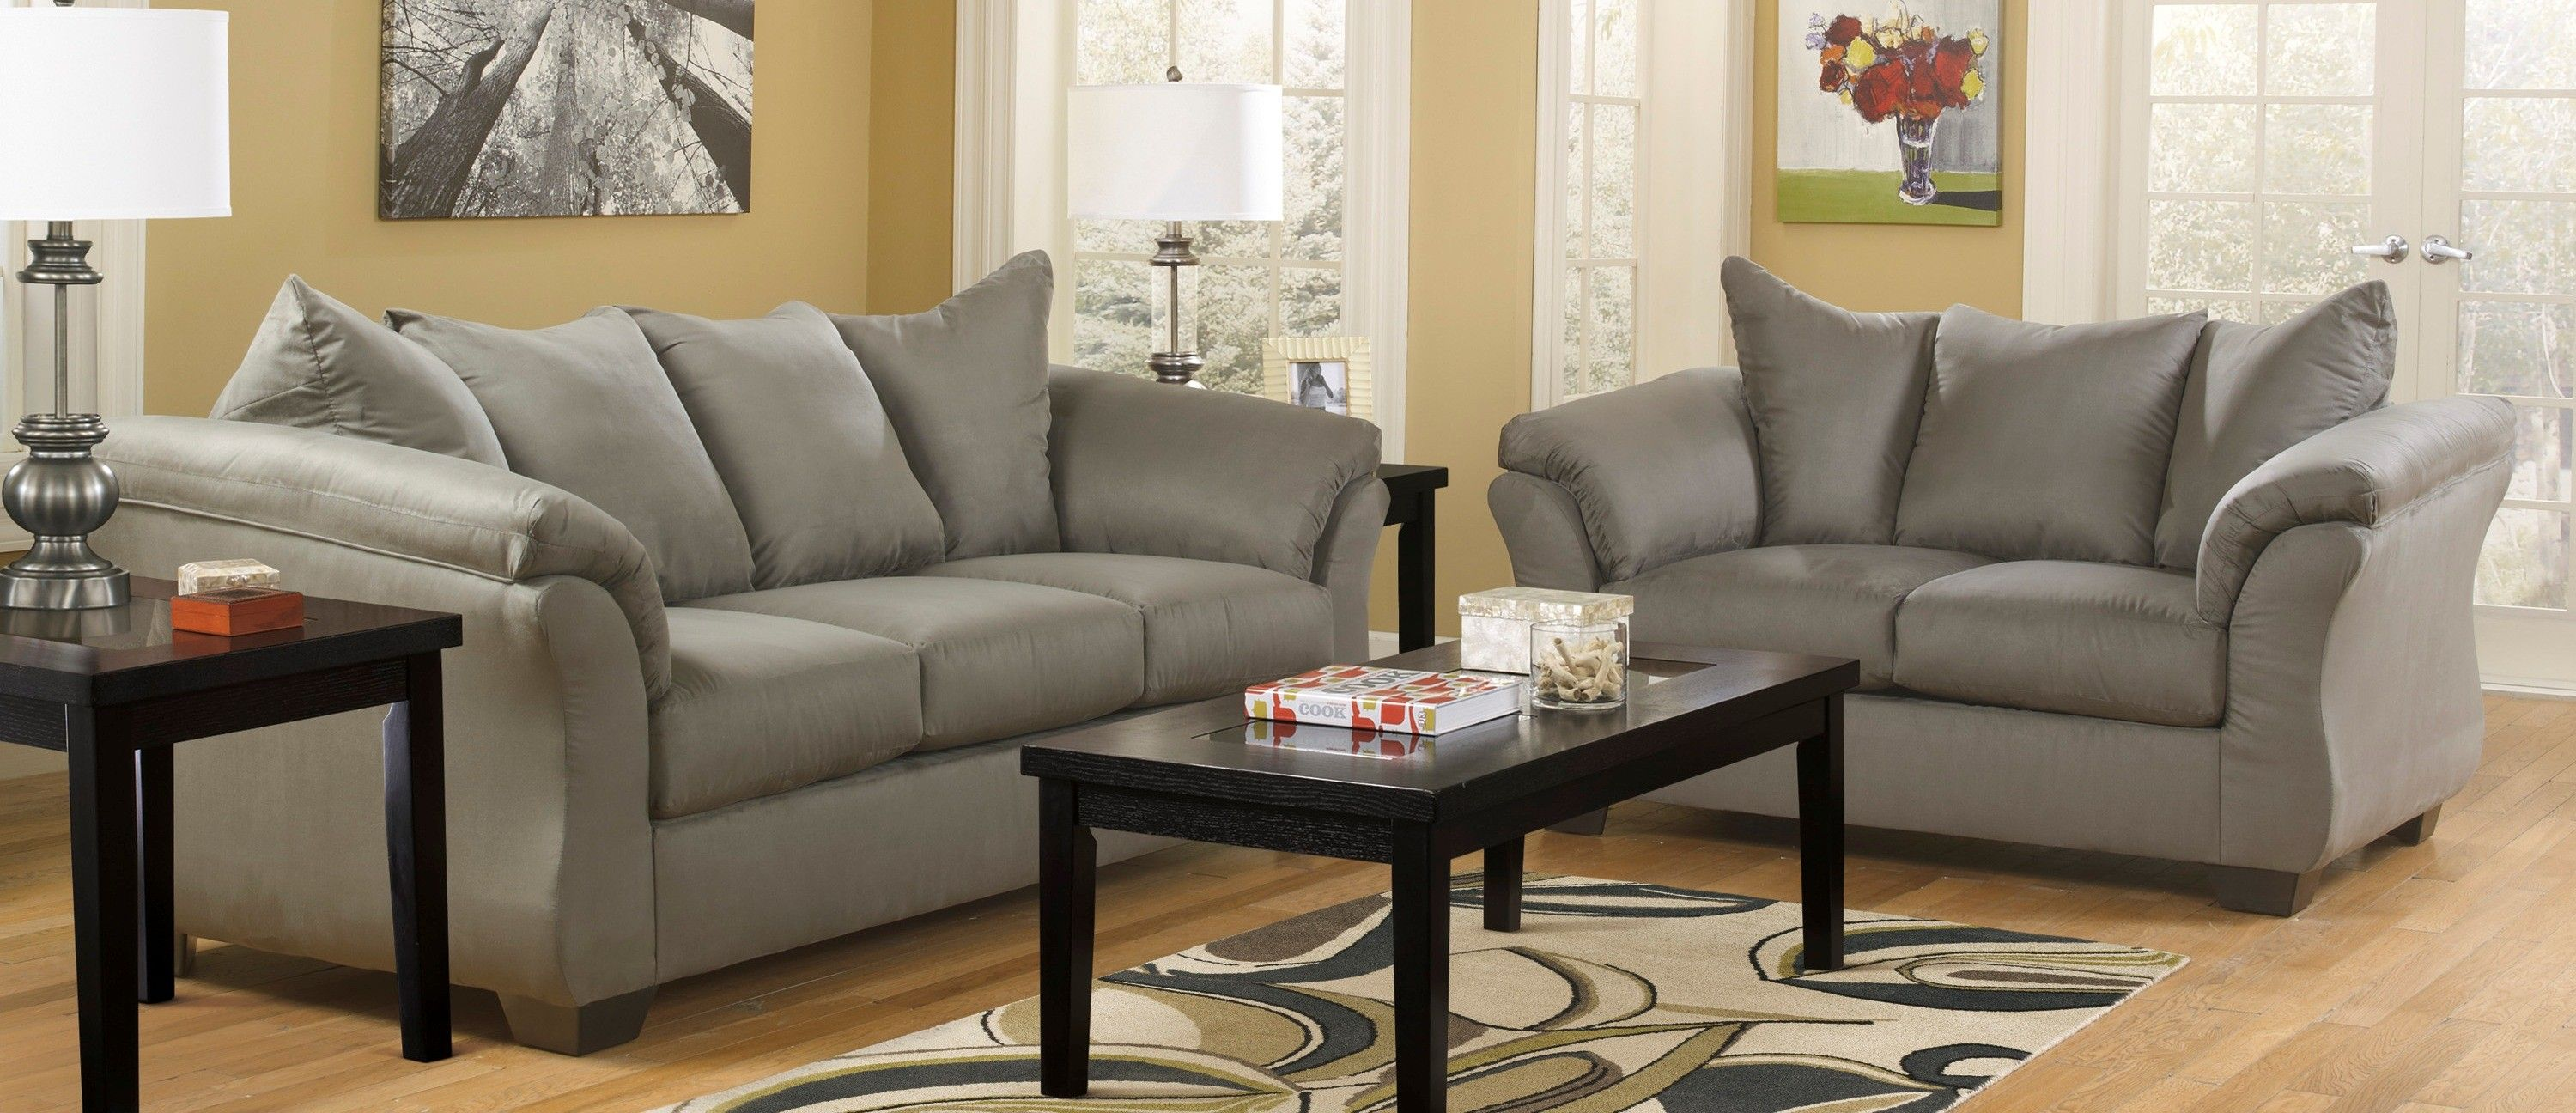 Nice Ashley Sofa Reviews New 27 About Remodel Design Ideas With Http Sofascouch